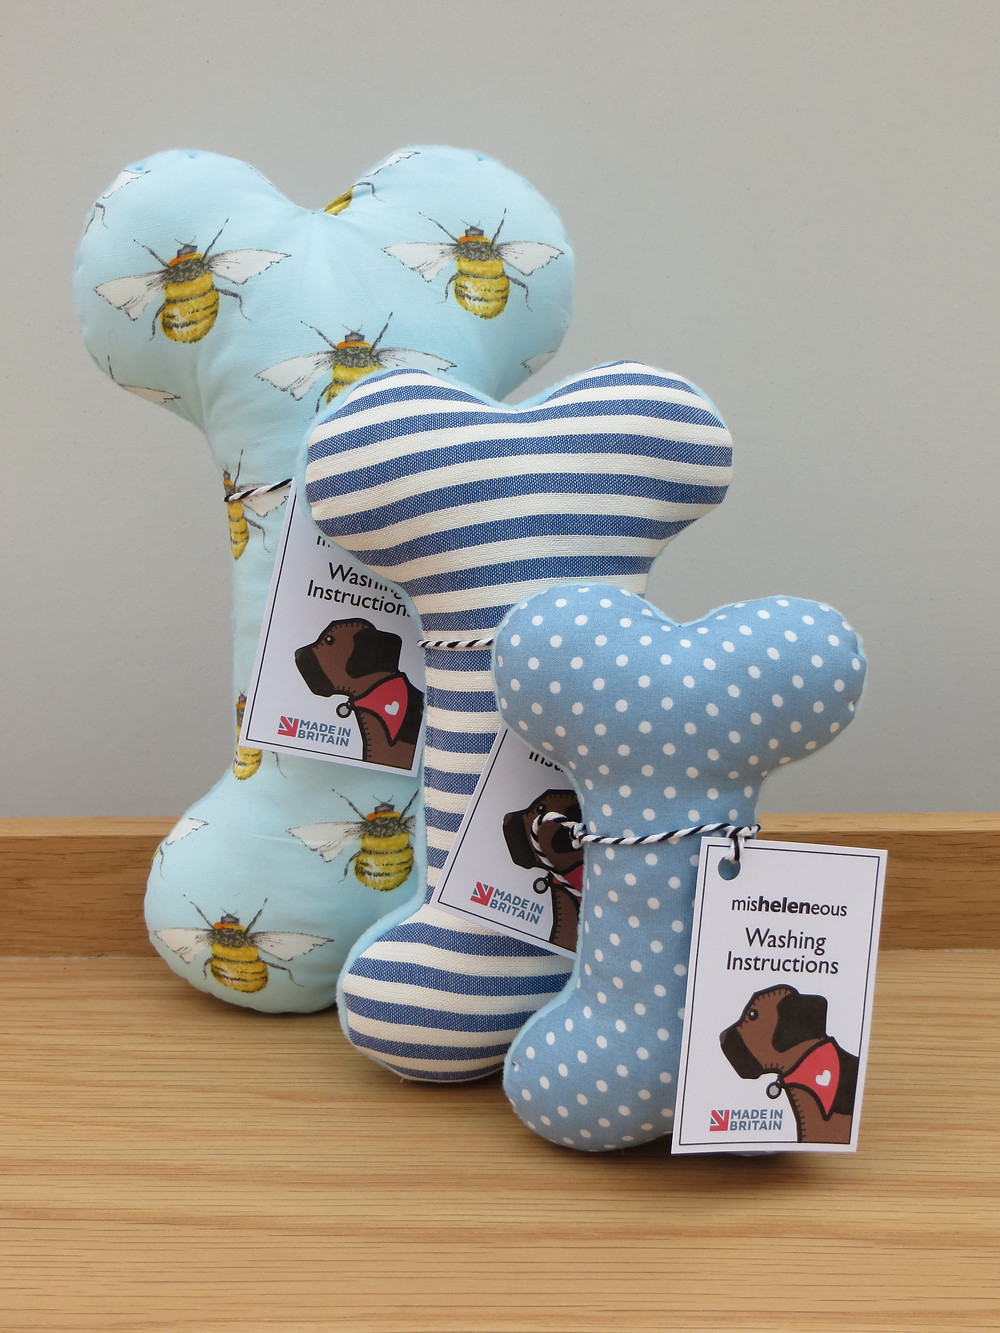 Three fabric dog toy bones in 3 different sizes and prints including bee motif stripes and spots